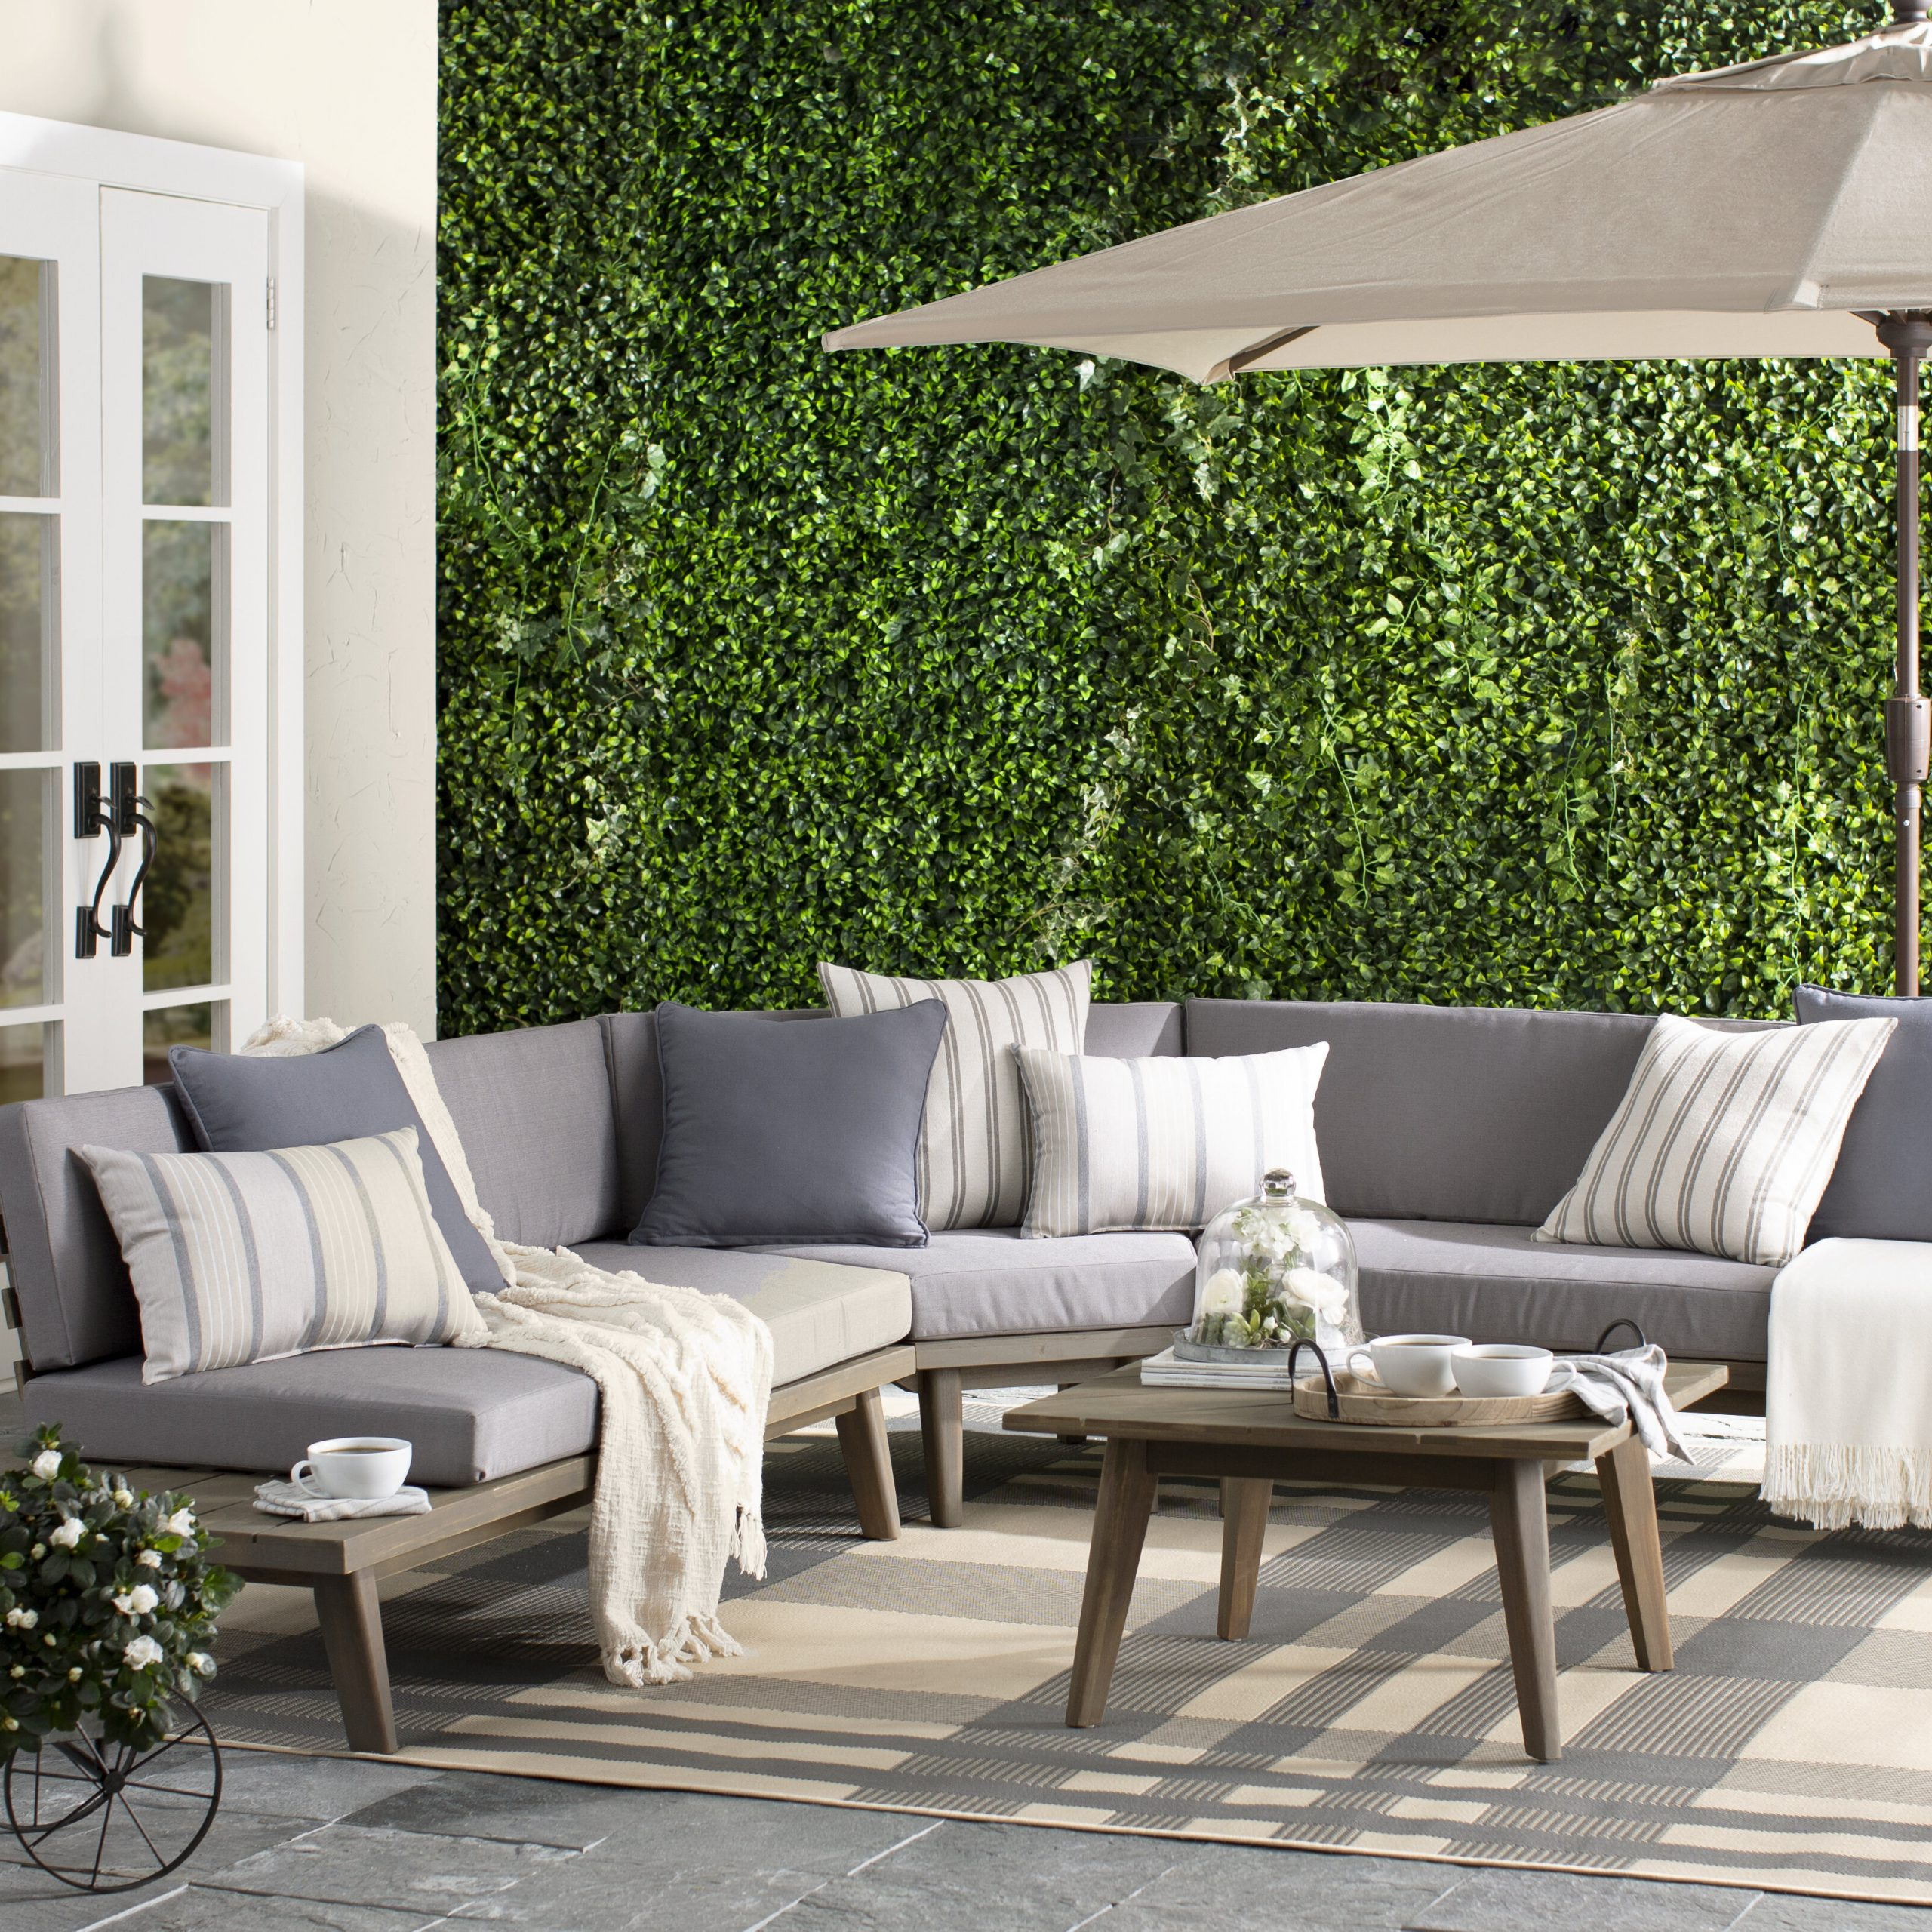 Calloway 4 Piece Sectional Seating Group With Cushions Pertaining To Popular Olinda 3 Piece Sectionals Seating Group With Cushions (View 23 of 25)